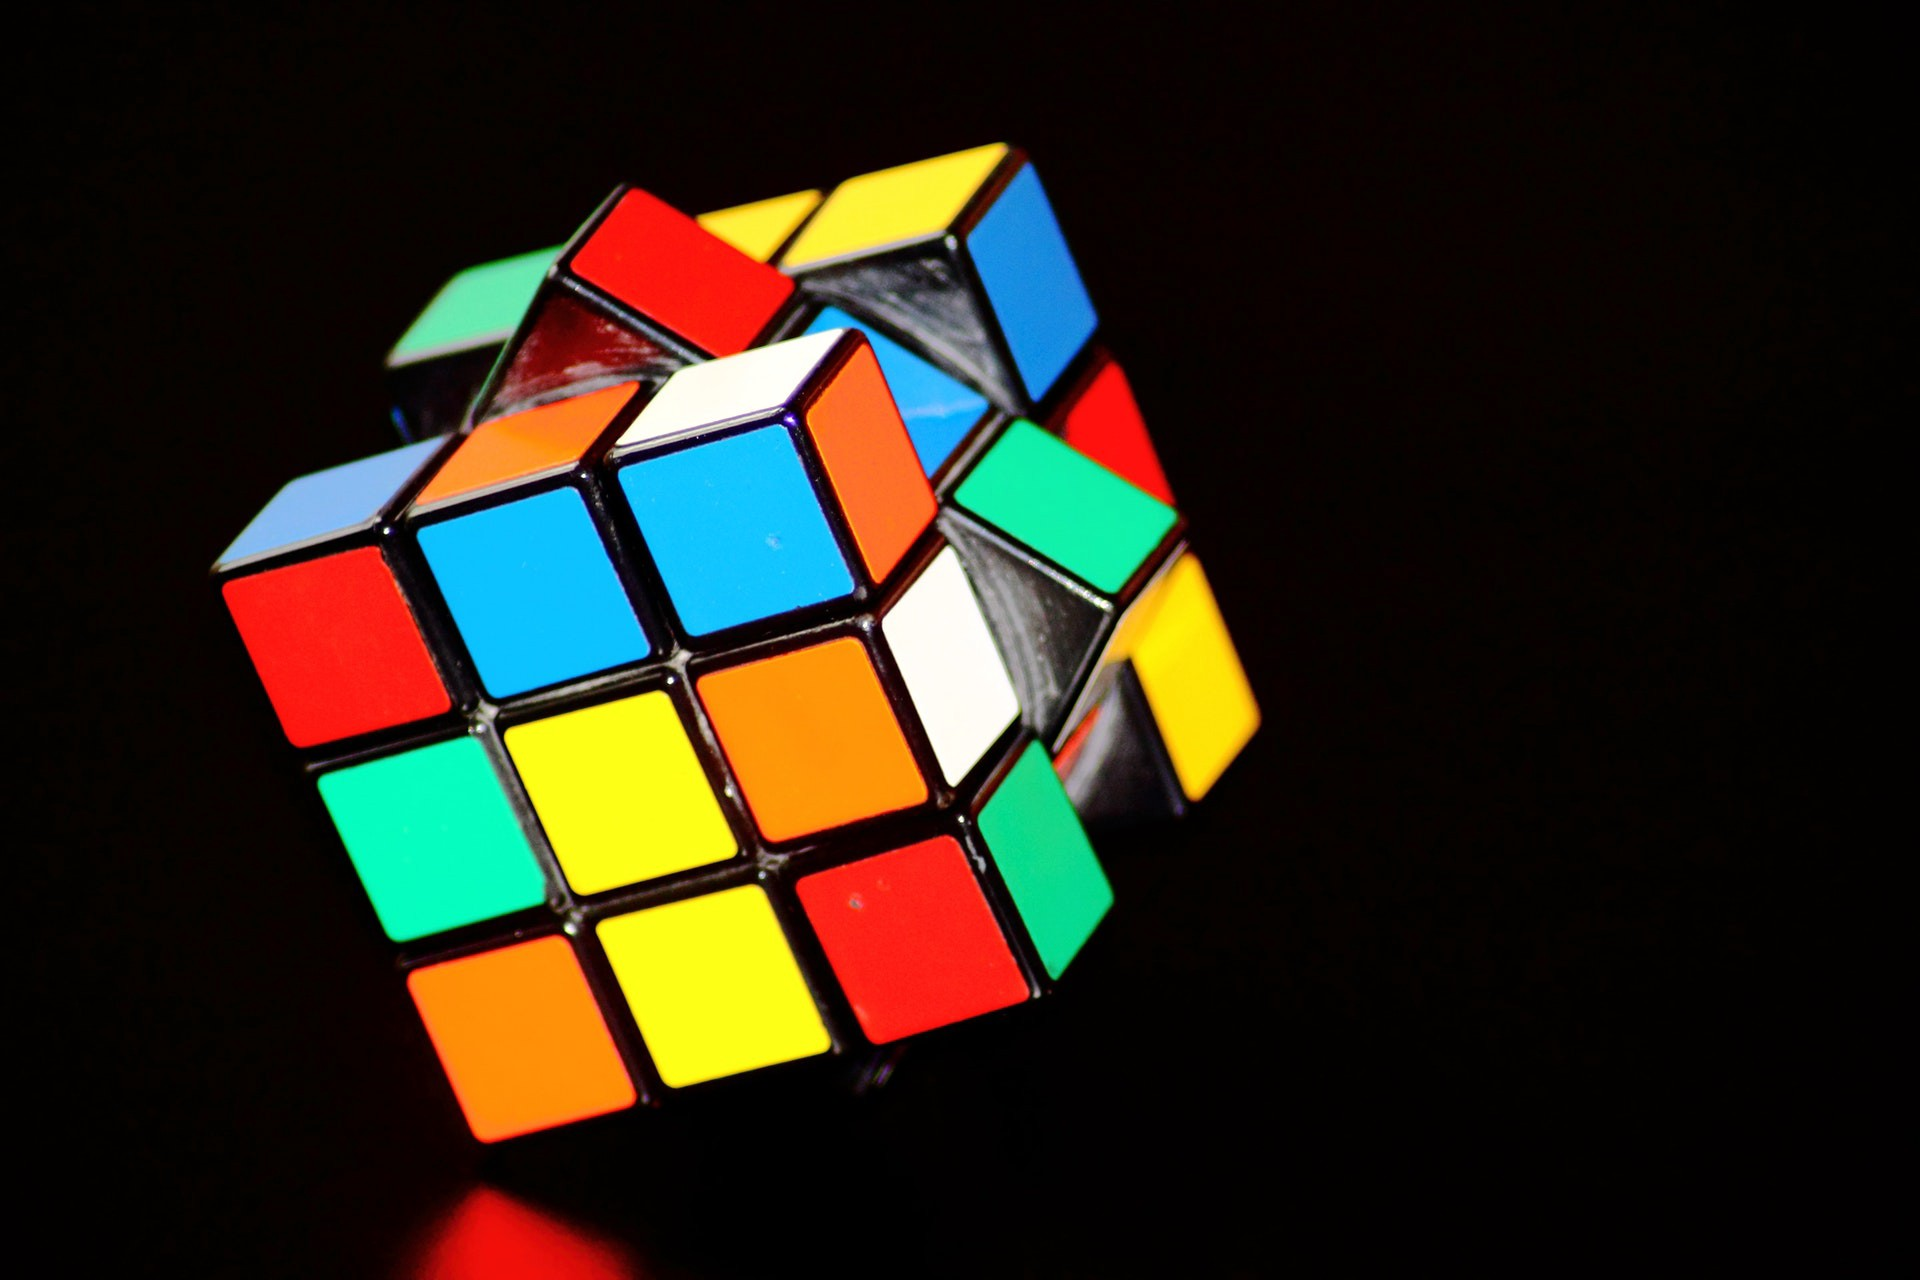 A Rubik's cube in front of a black background